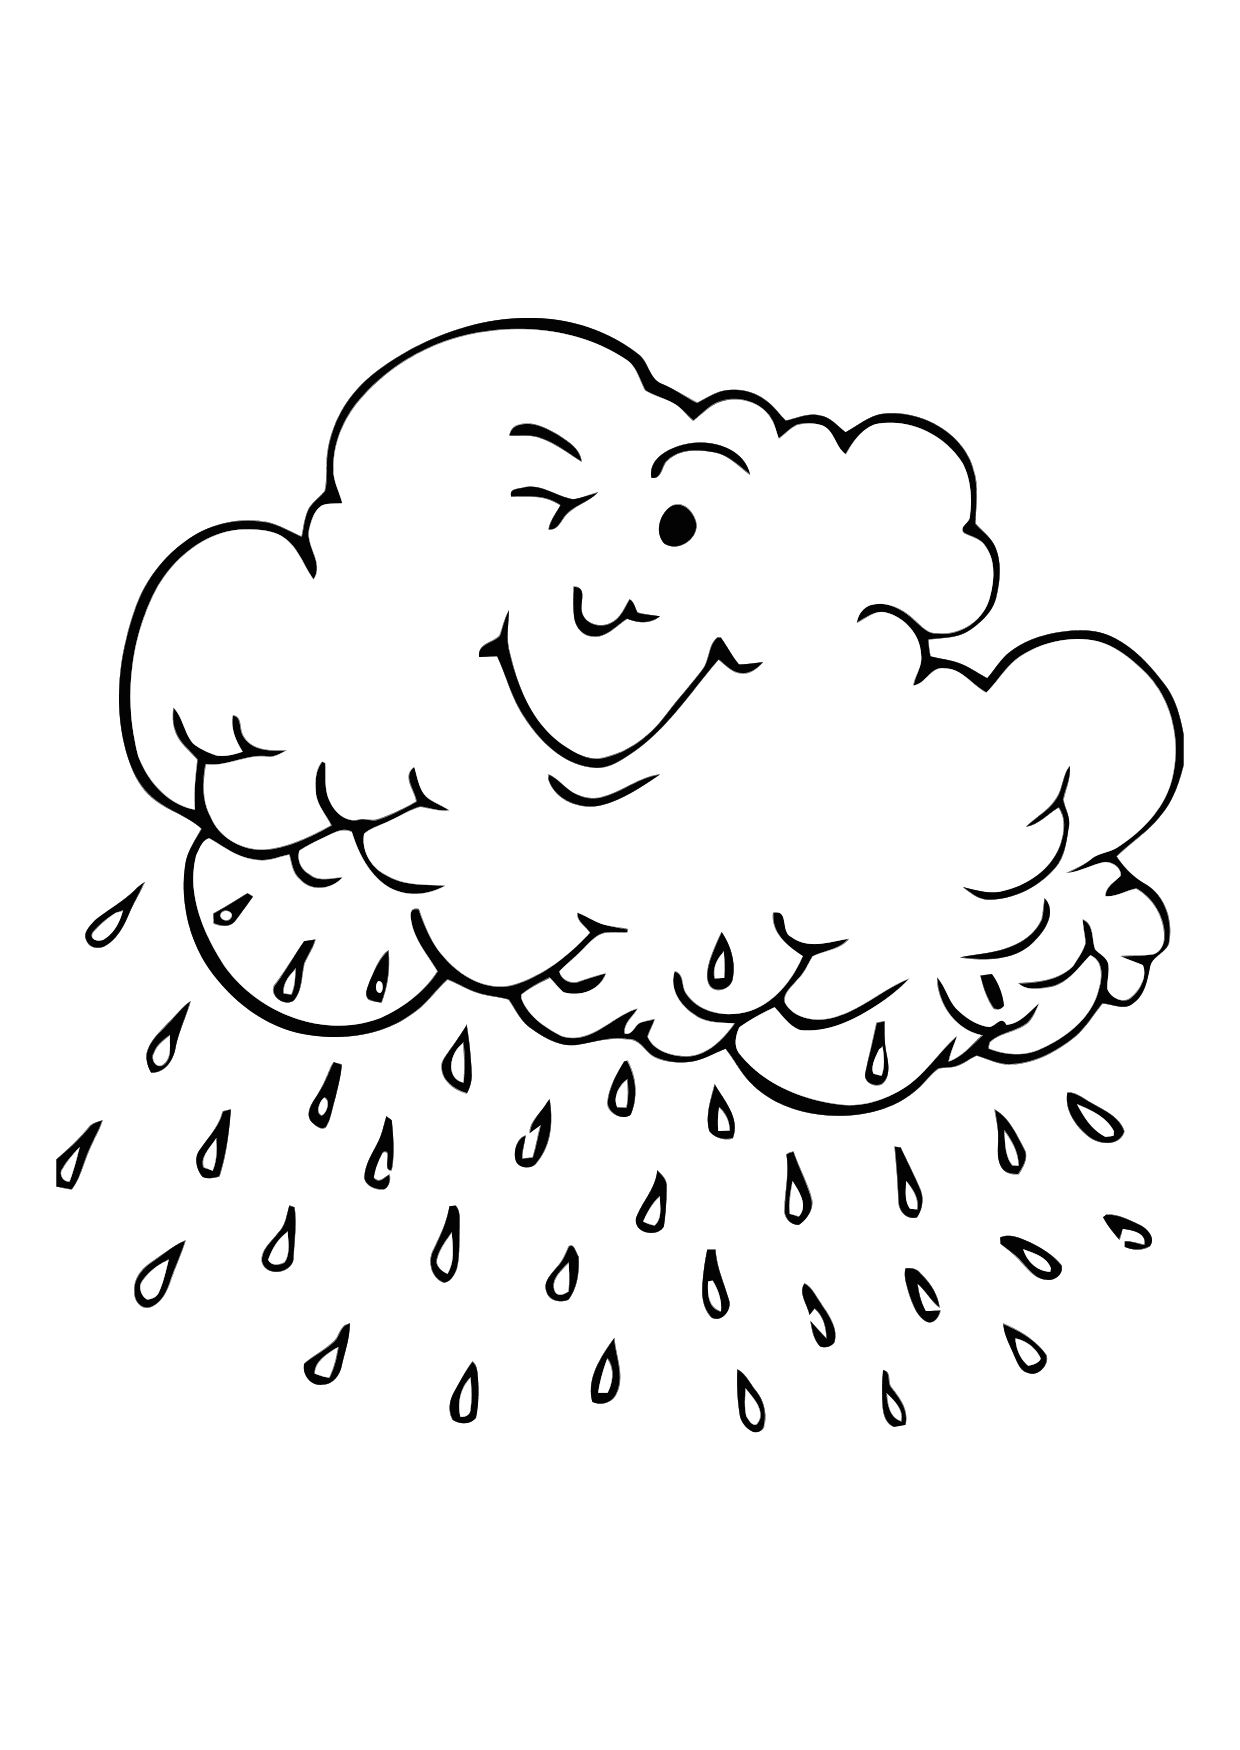 cloud coloring page free printable cloud coloring pages for kids coloring page cloud 1 1